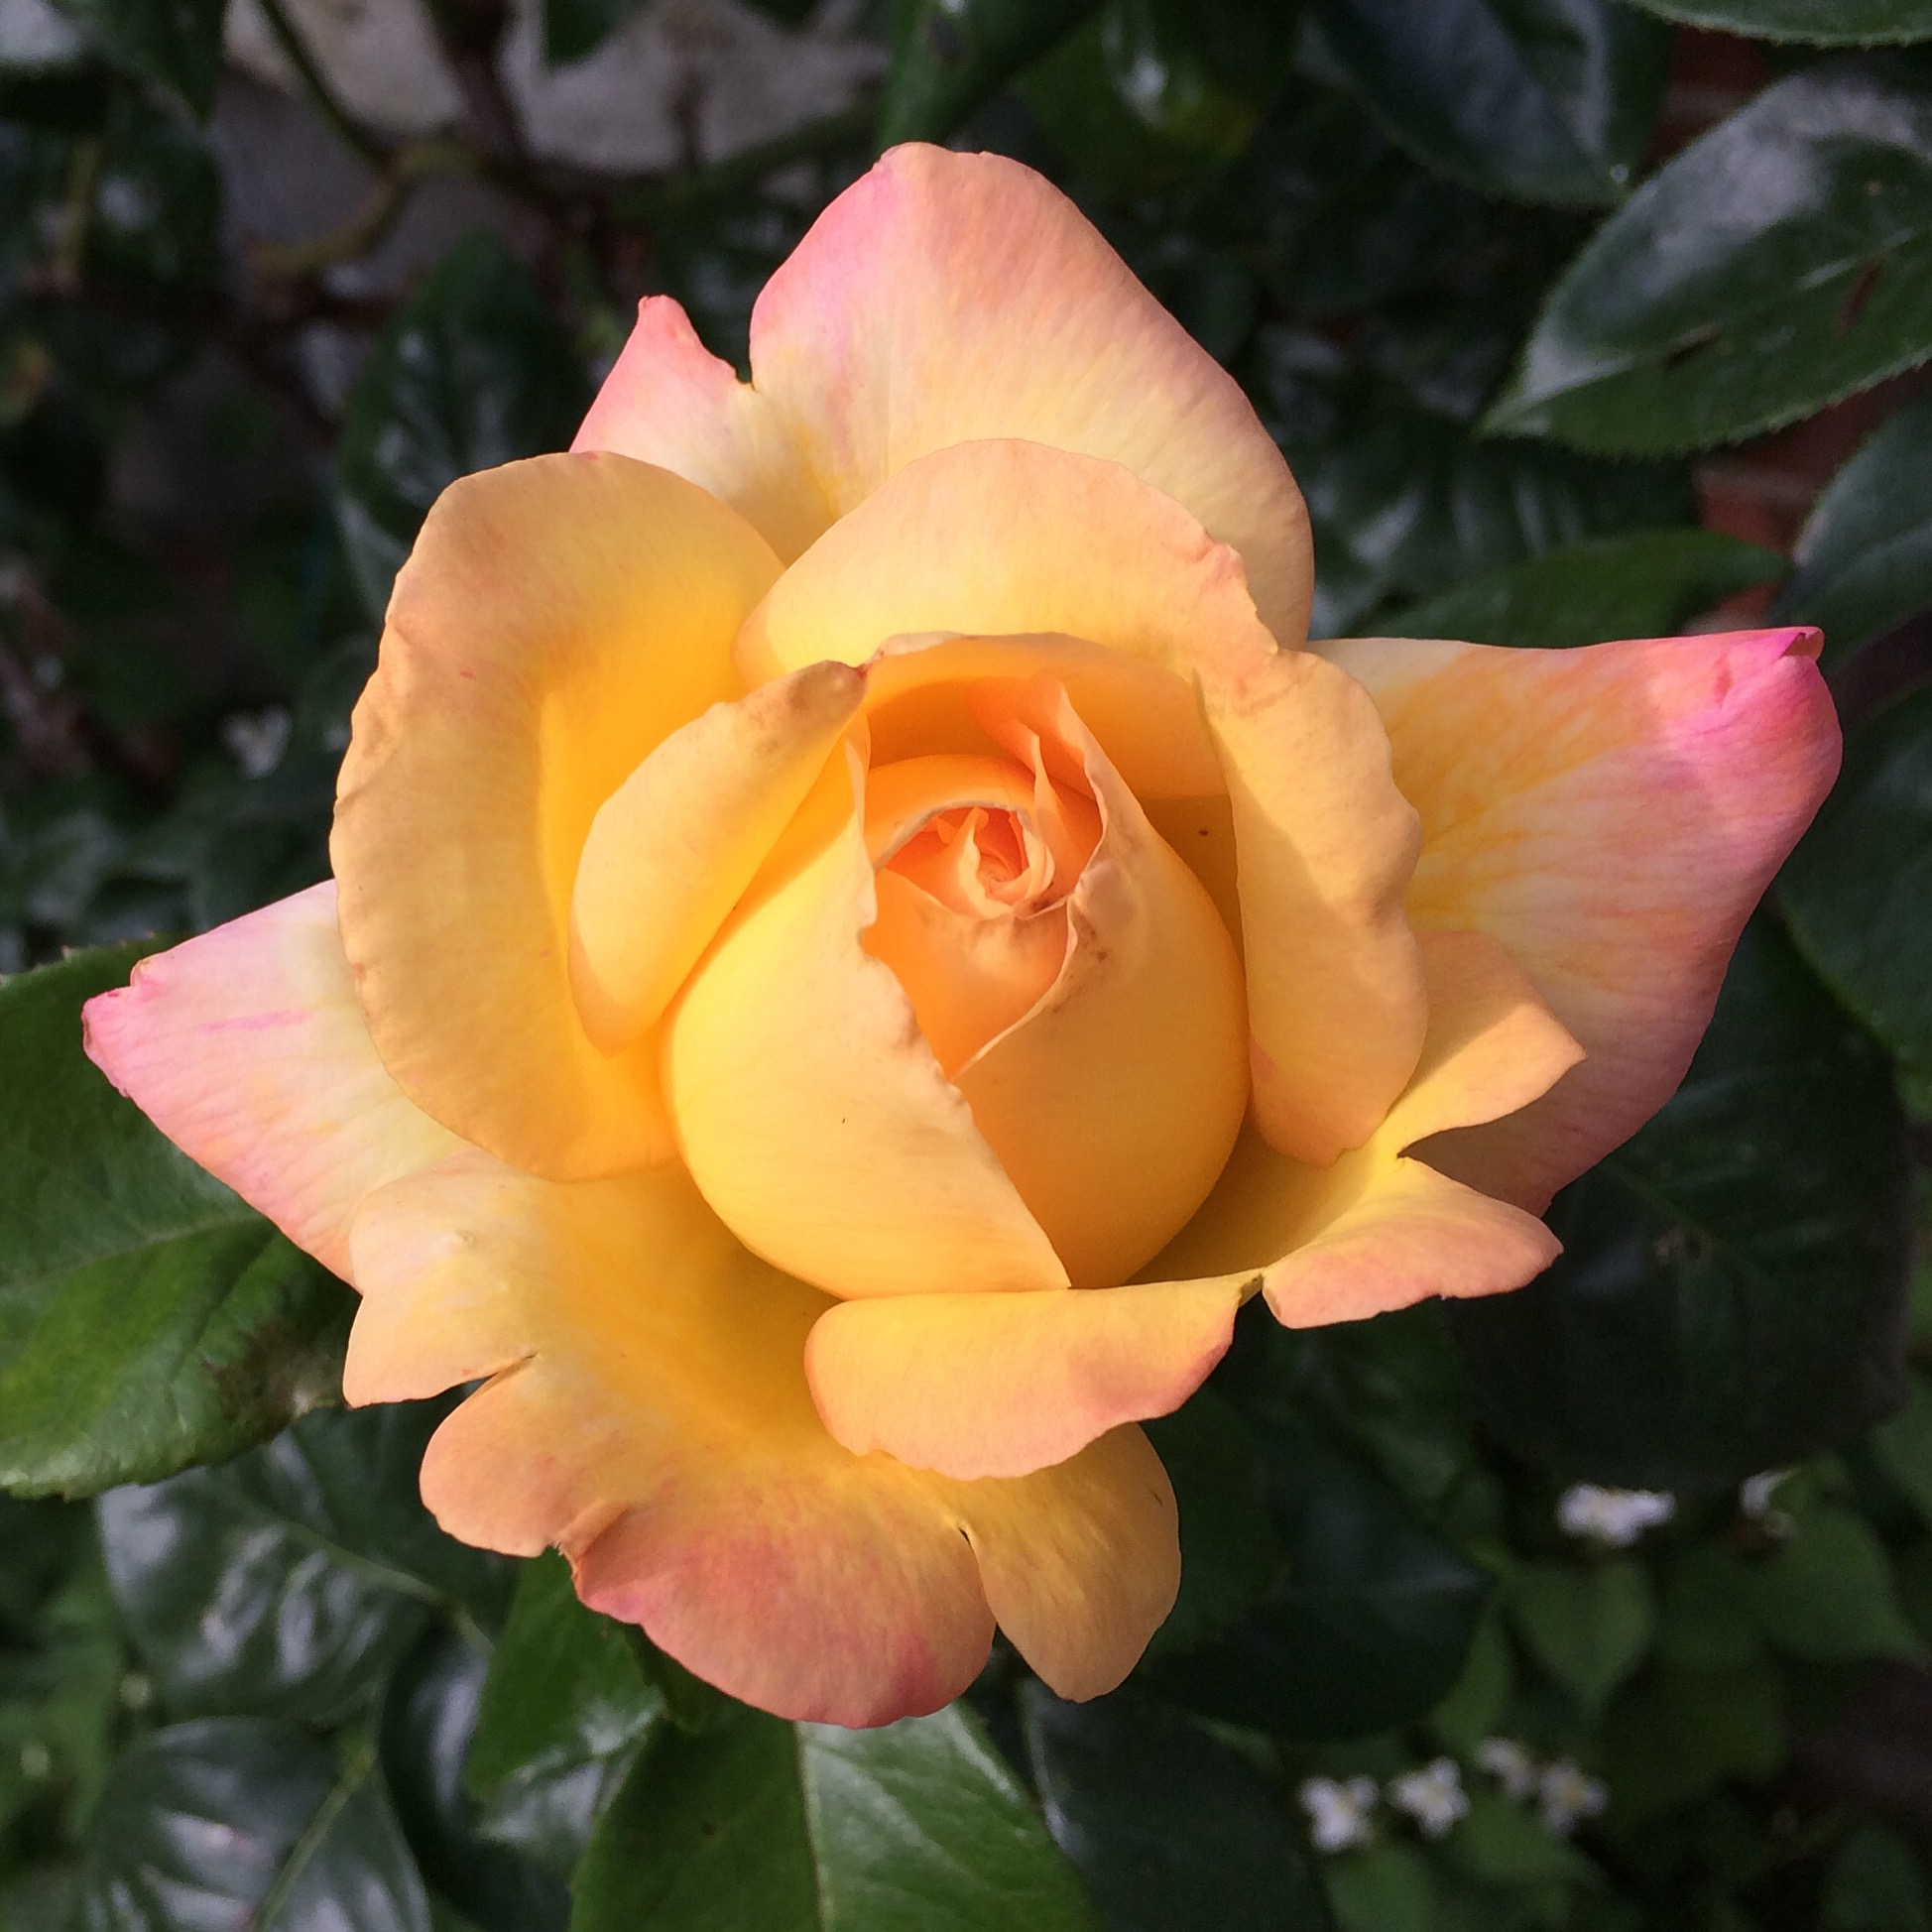 Our peace rose is giving us one bloom at a time, each as exquisite as the last